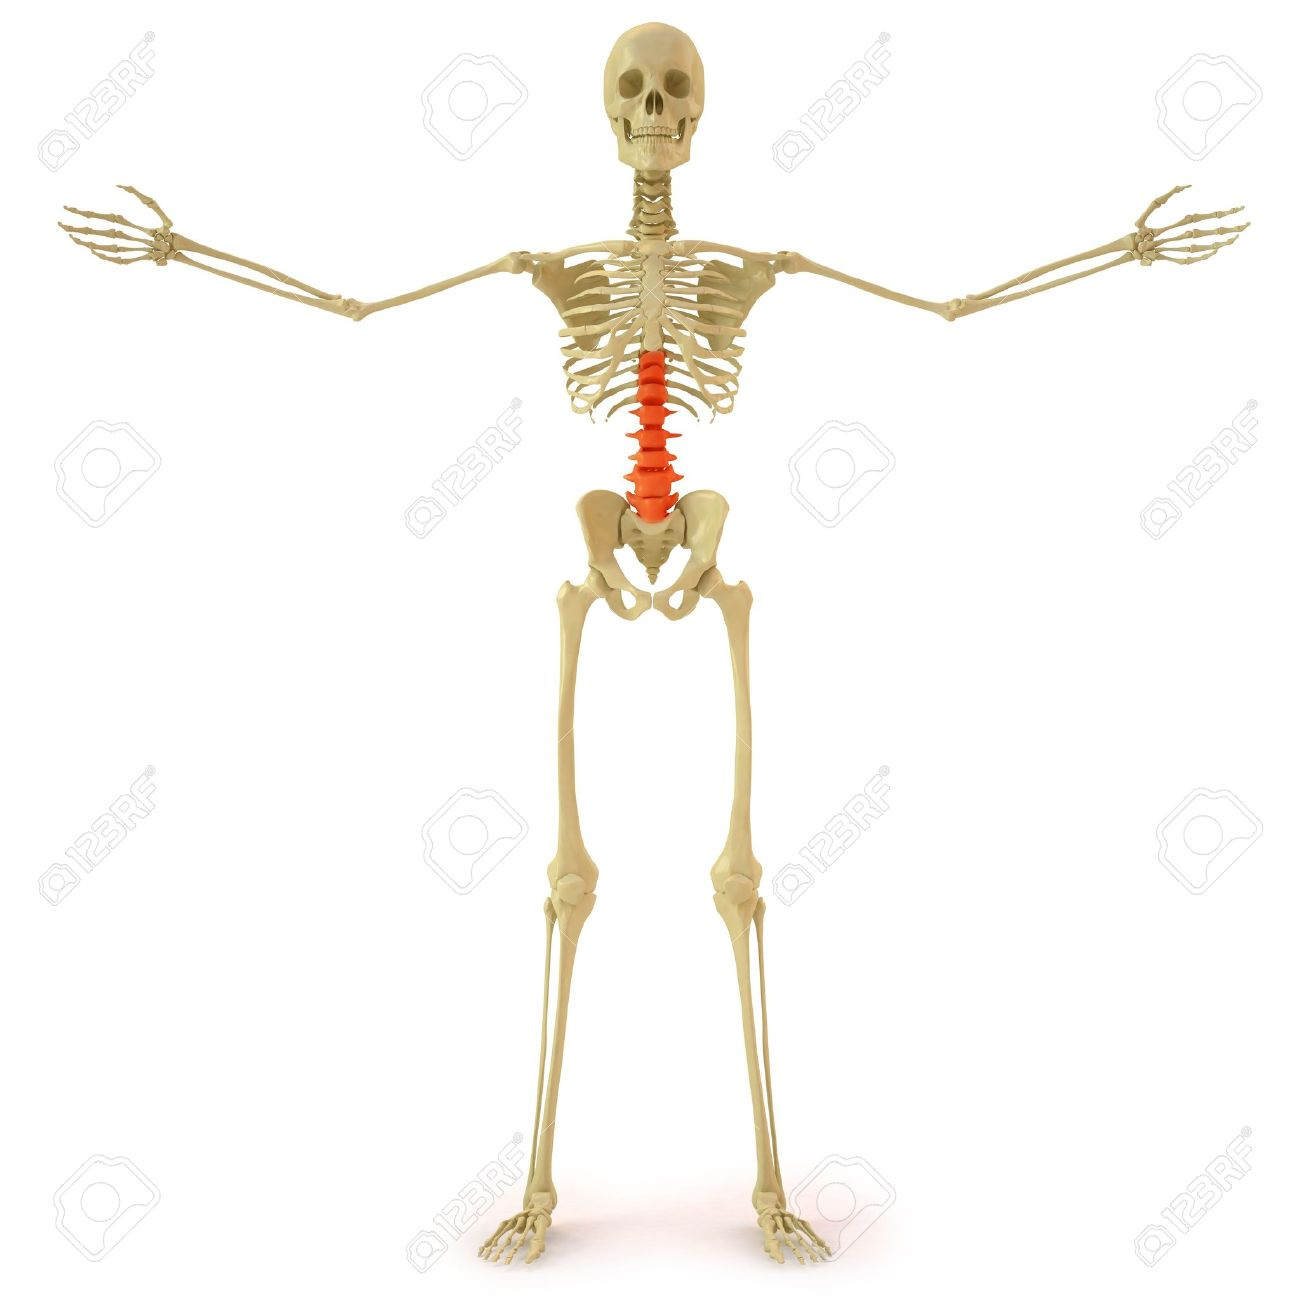 Human Skeleton With Red Spine Isolated On White Stock Photo